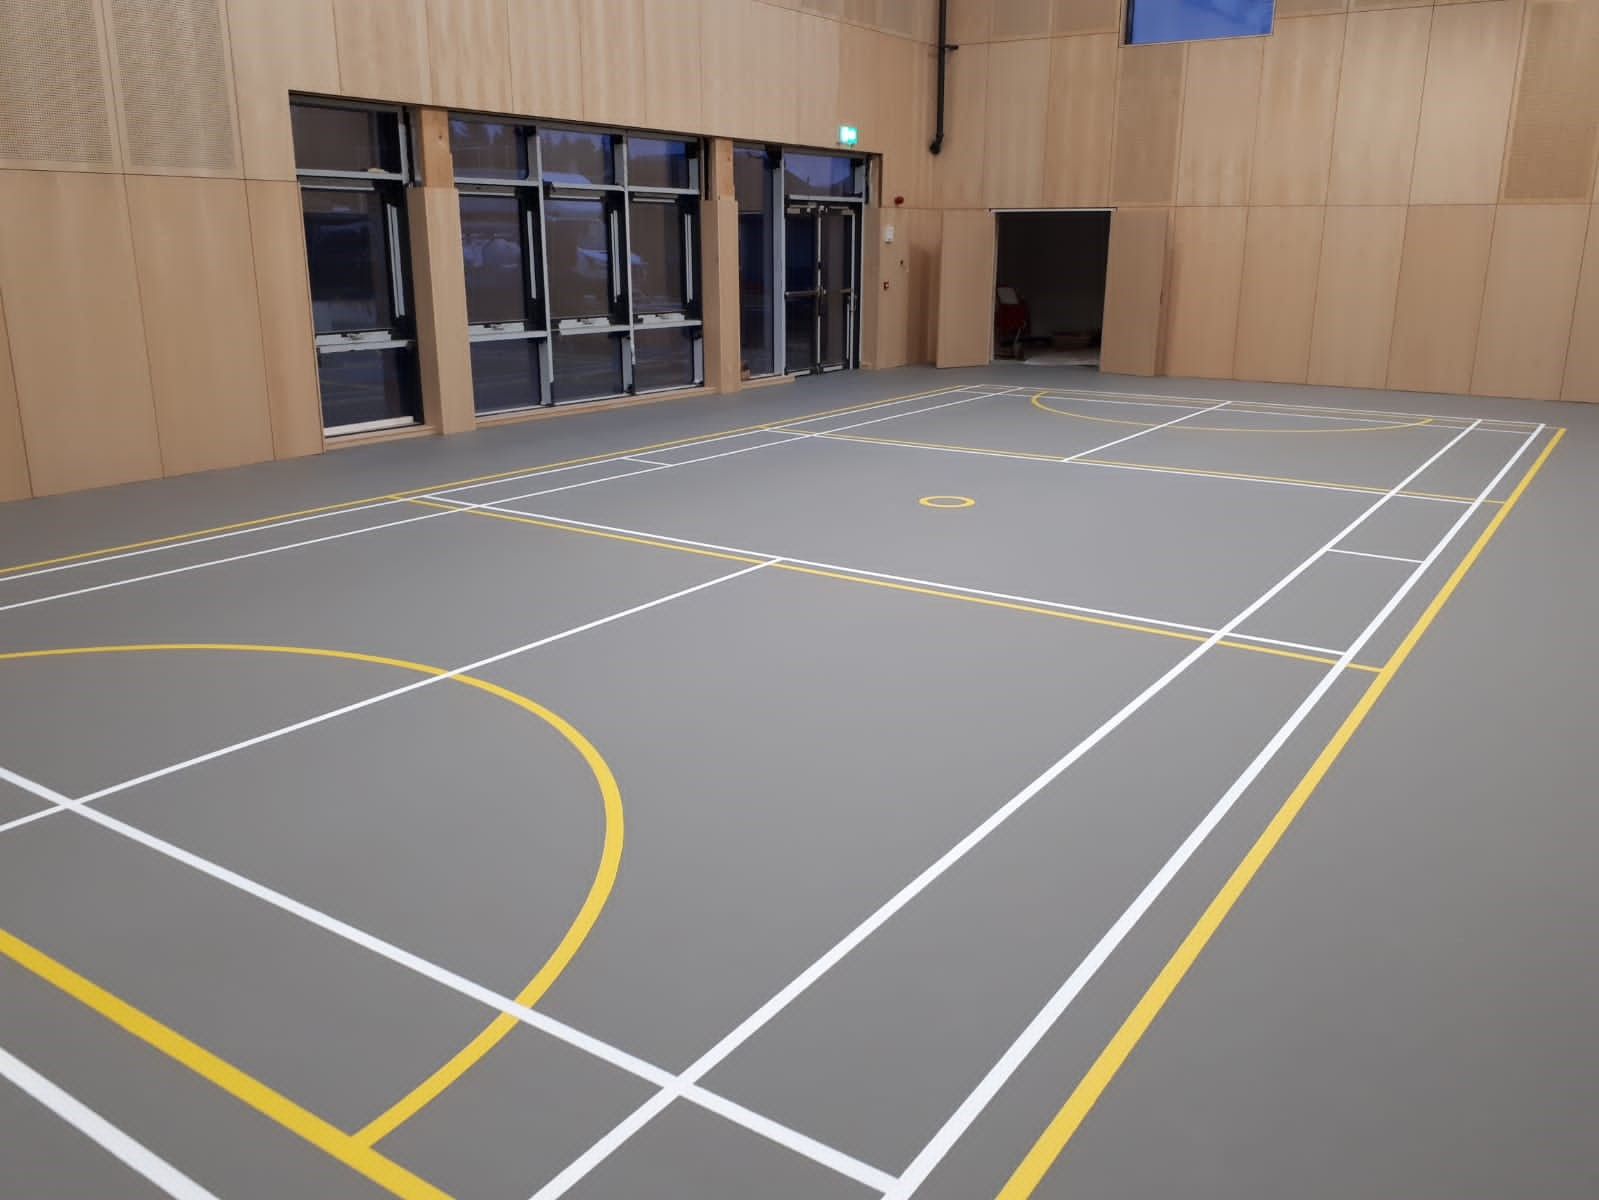 Our SSUK Pulsatic Eco 70 indoor sports floor is the perfect multi-purpose sports floor providing comfort and safety for a variety of sport and non sport activities. Ideal for any primary school setting.